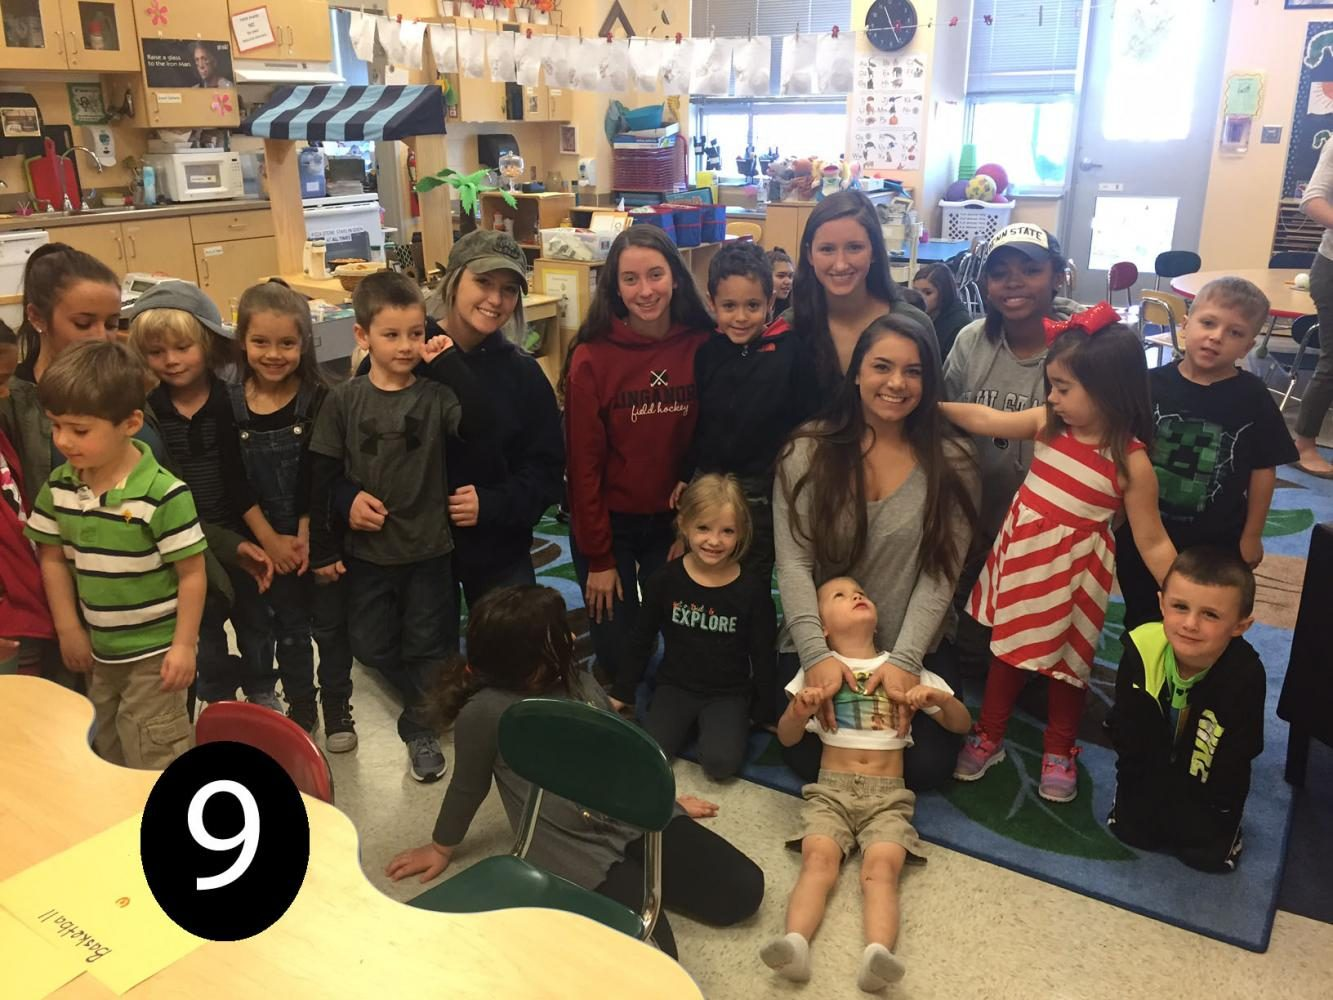 The+seniors+in+the+Child+Development+class+pose+with+some+of+the+preschoolers.